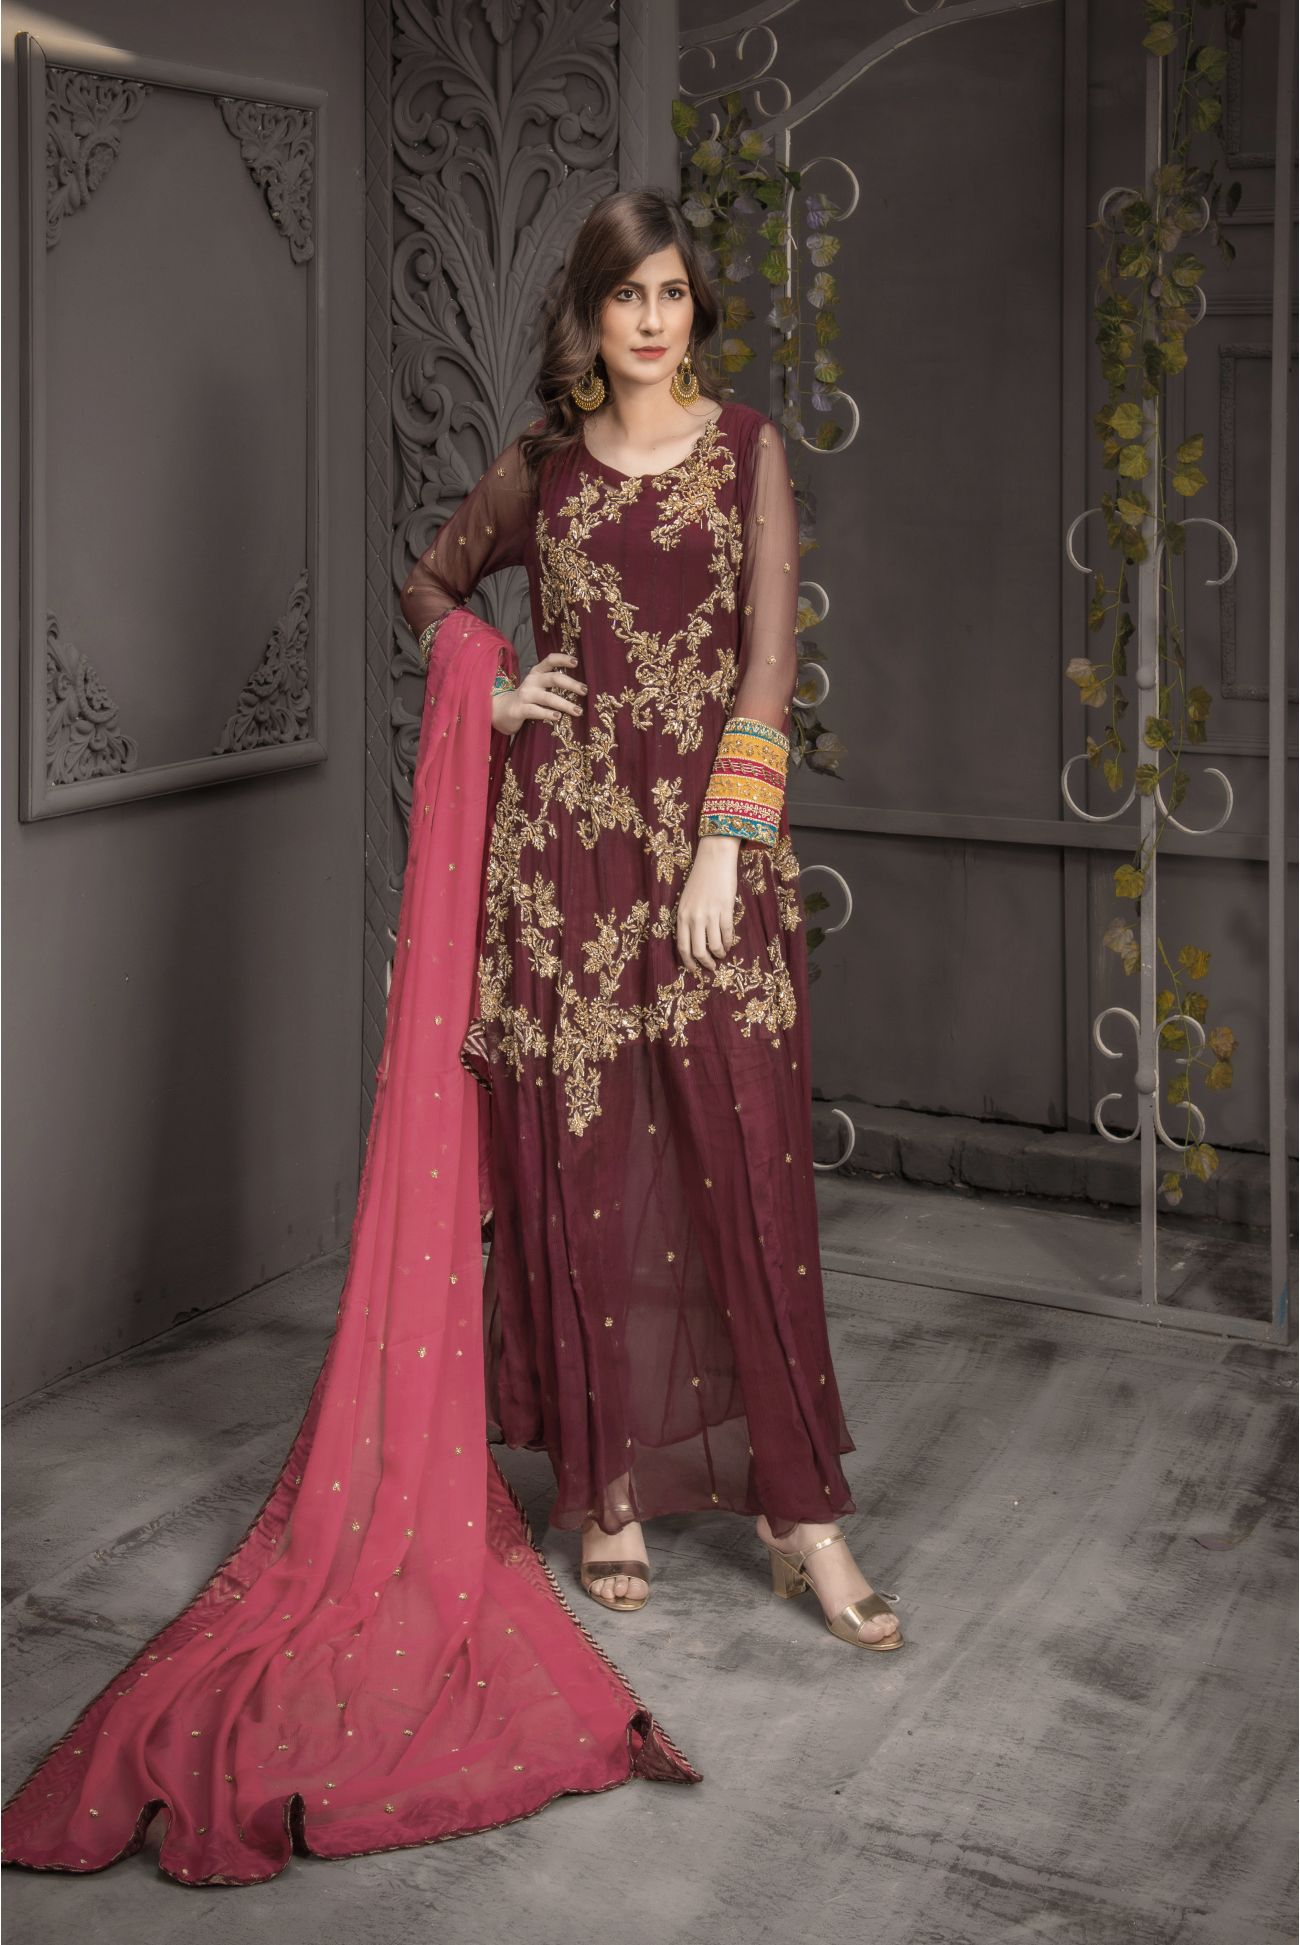 Buy Exclusive Plum And Pink Bridal Wear – Aqbd04 Online In USA, Uk & Pakistan - 01